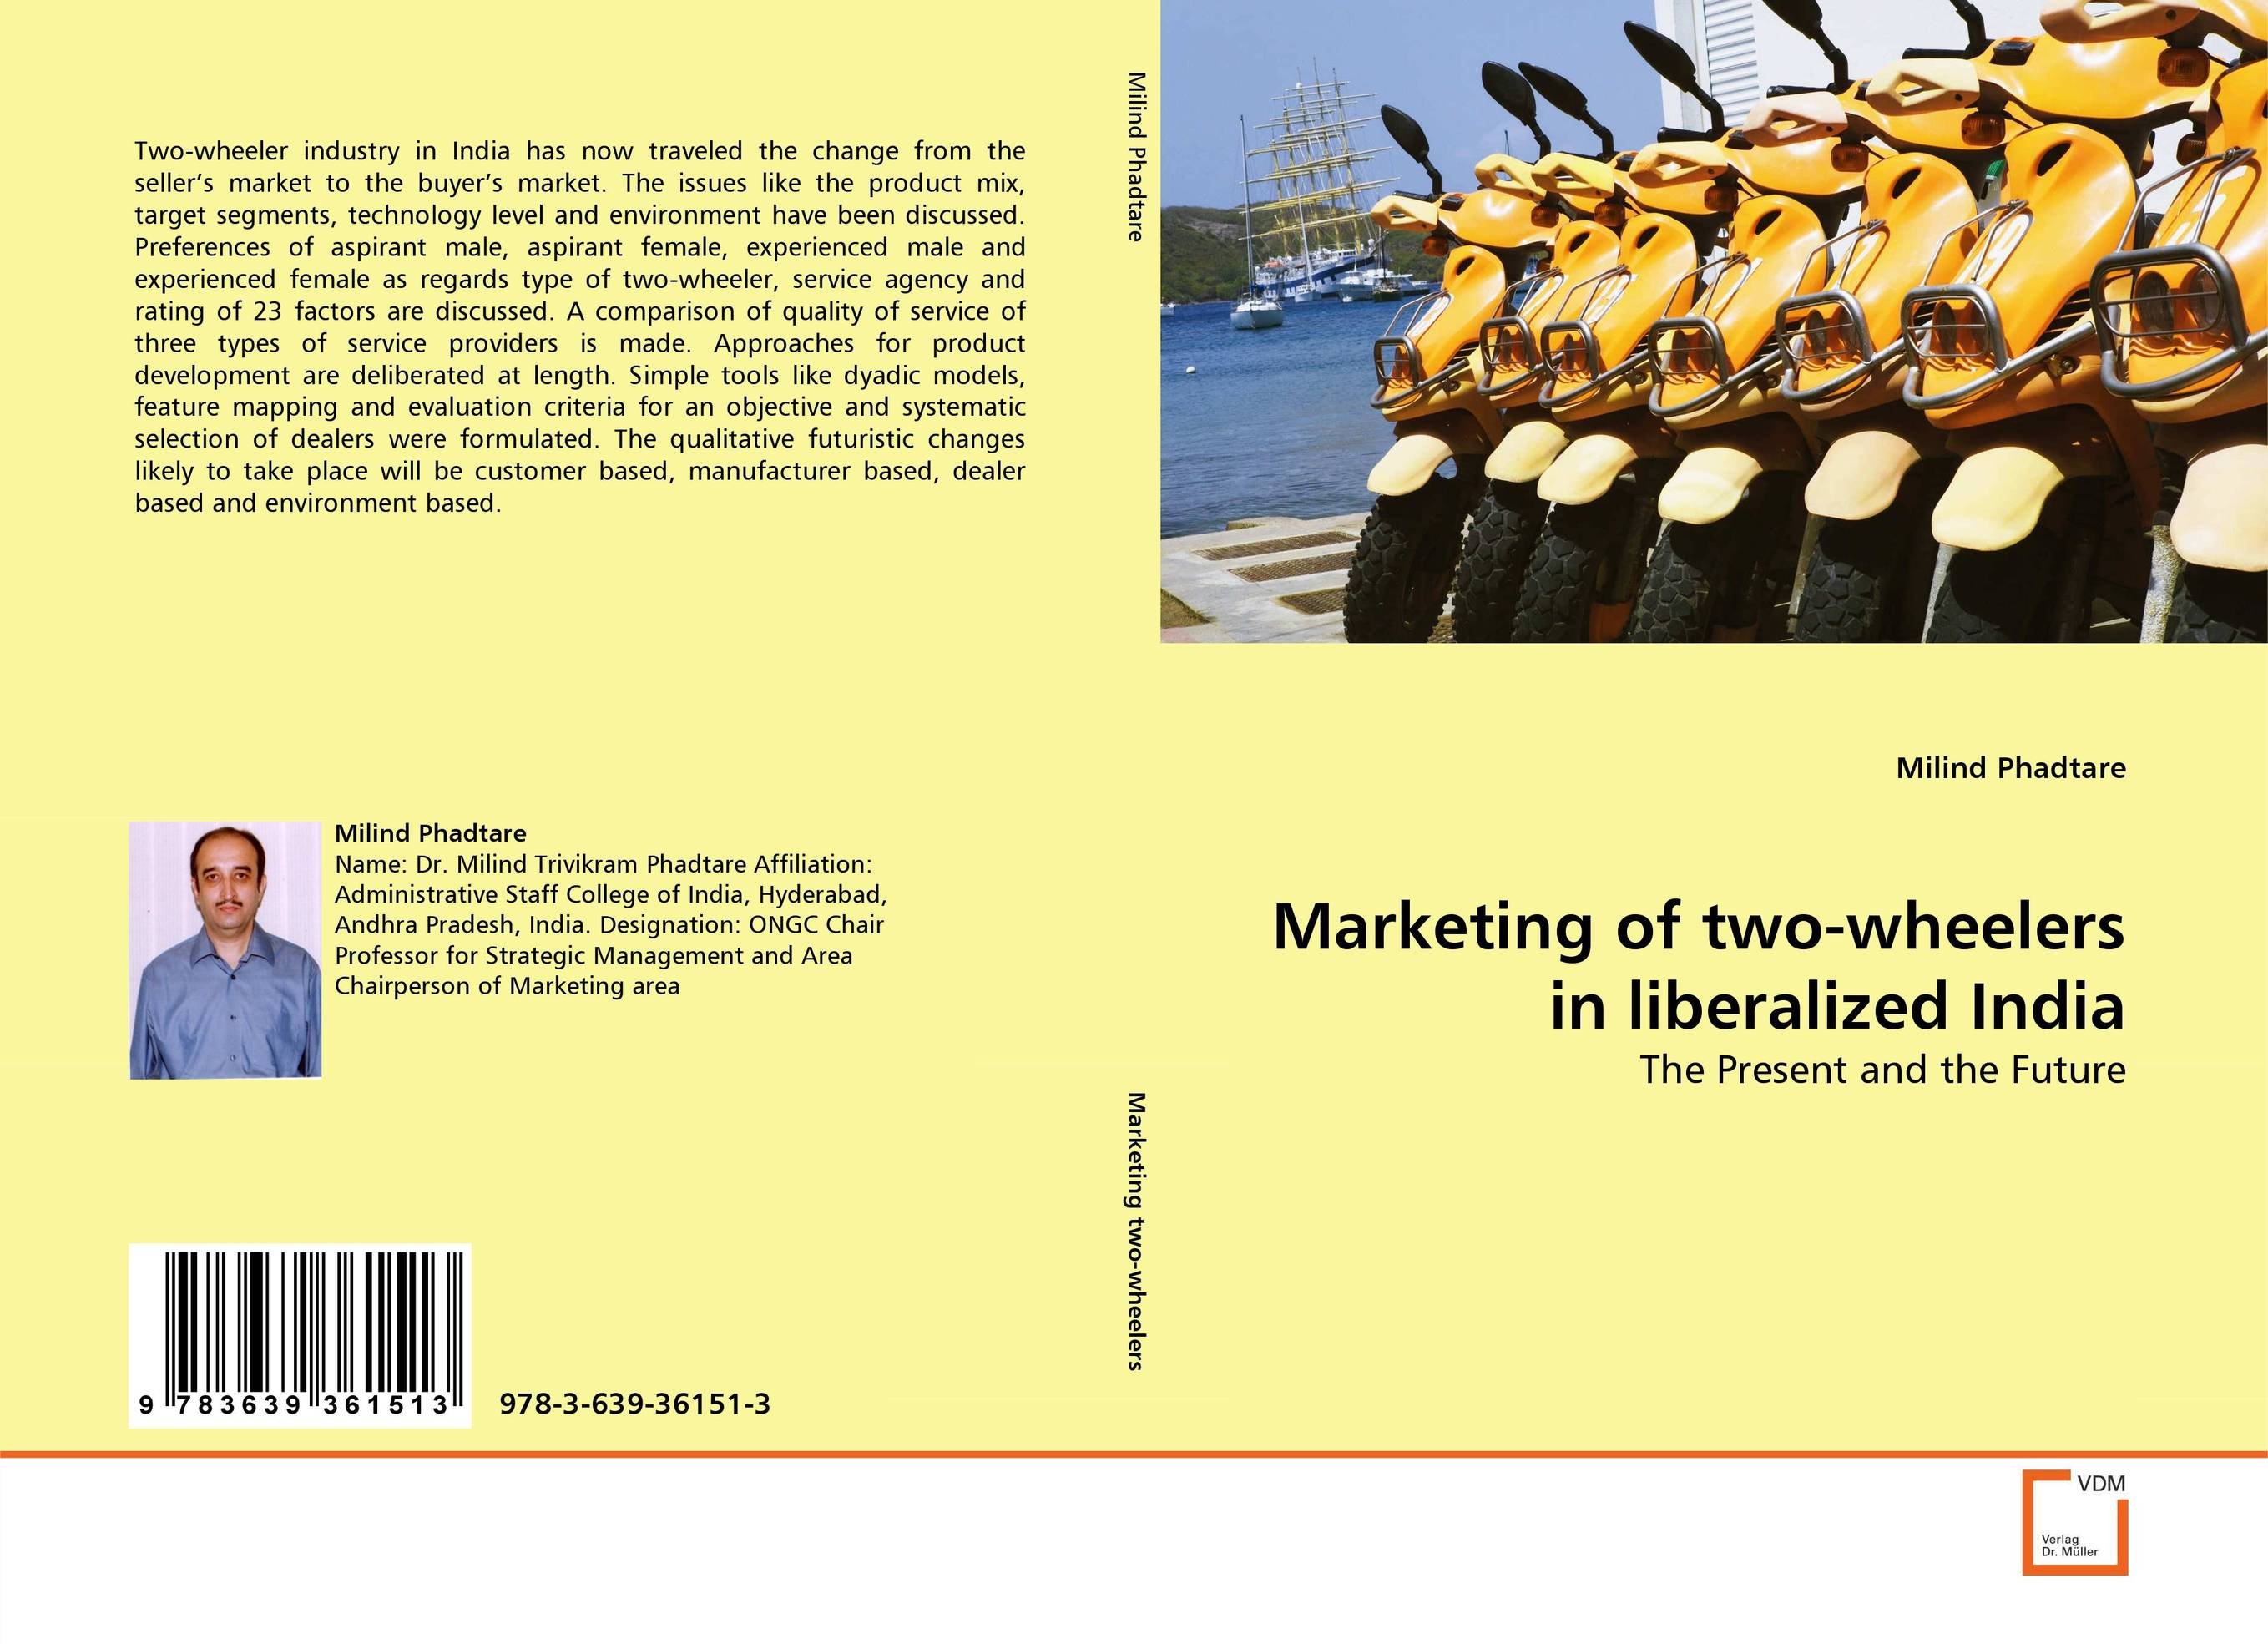 Marketing of two-wheelers in liberalized India an incremental graft parsing based program development environment